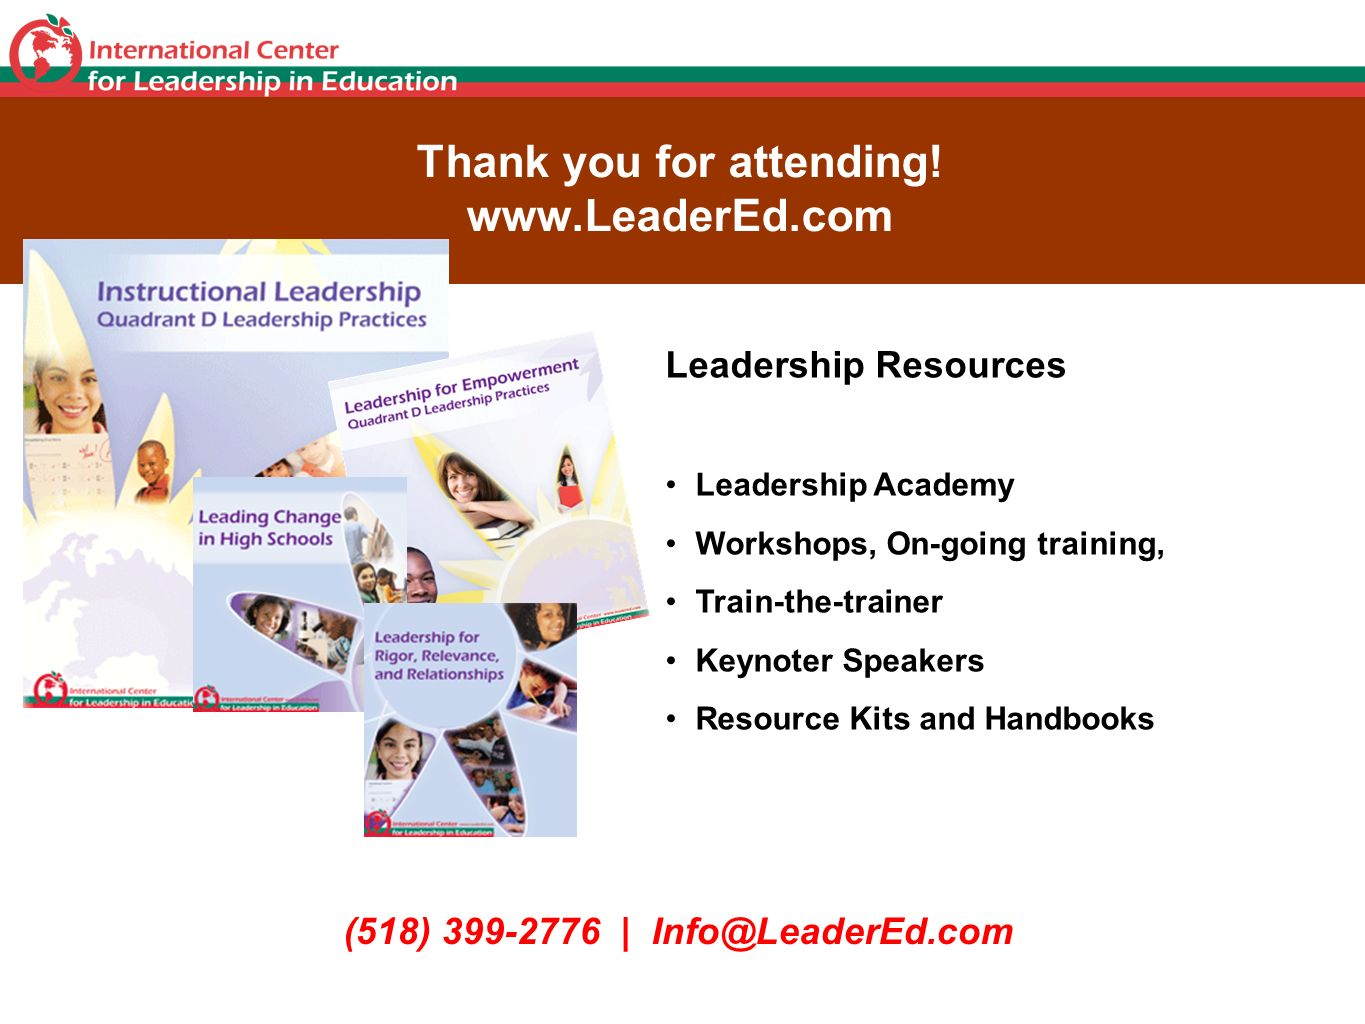 Thank you for attending! www.LeaderEd.com (518) 399-2776 | Info@LeaderEd.com Leadership Resources Leadership Academy Workshops, On-going training, Tra